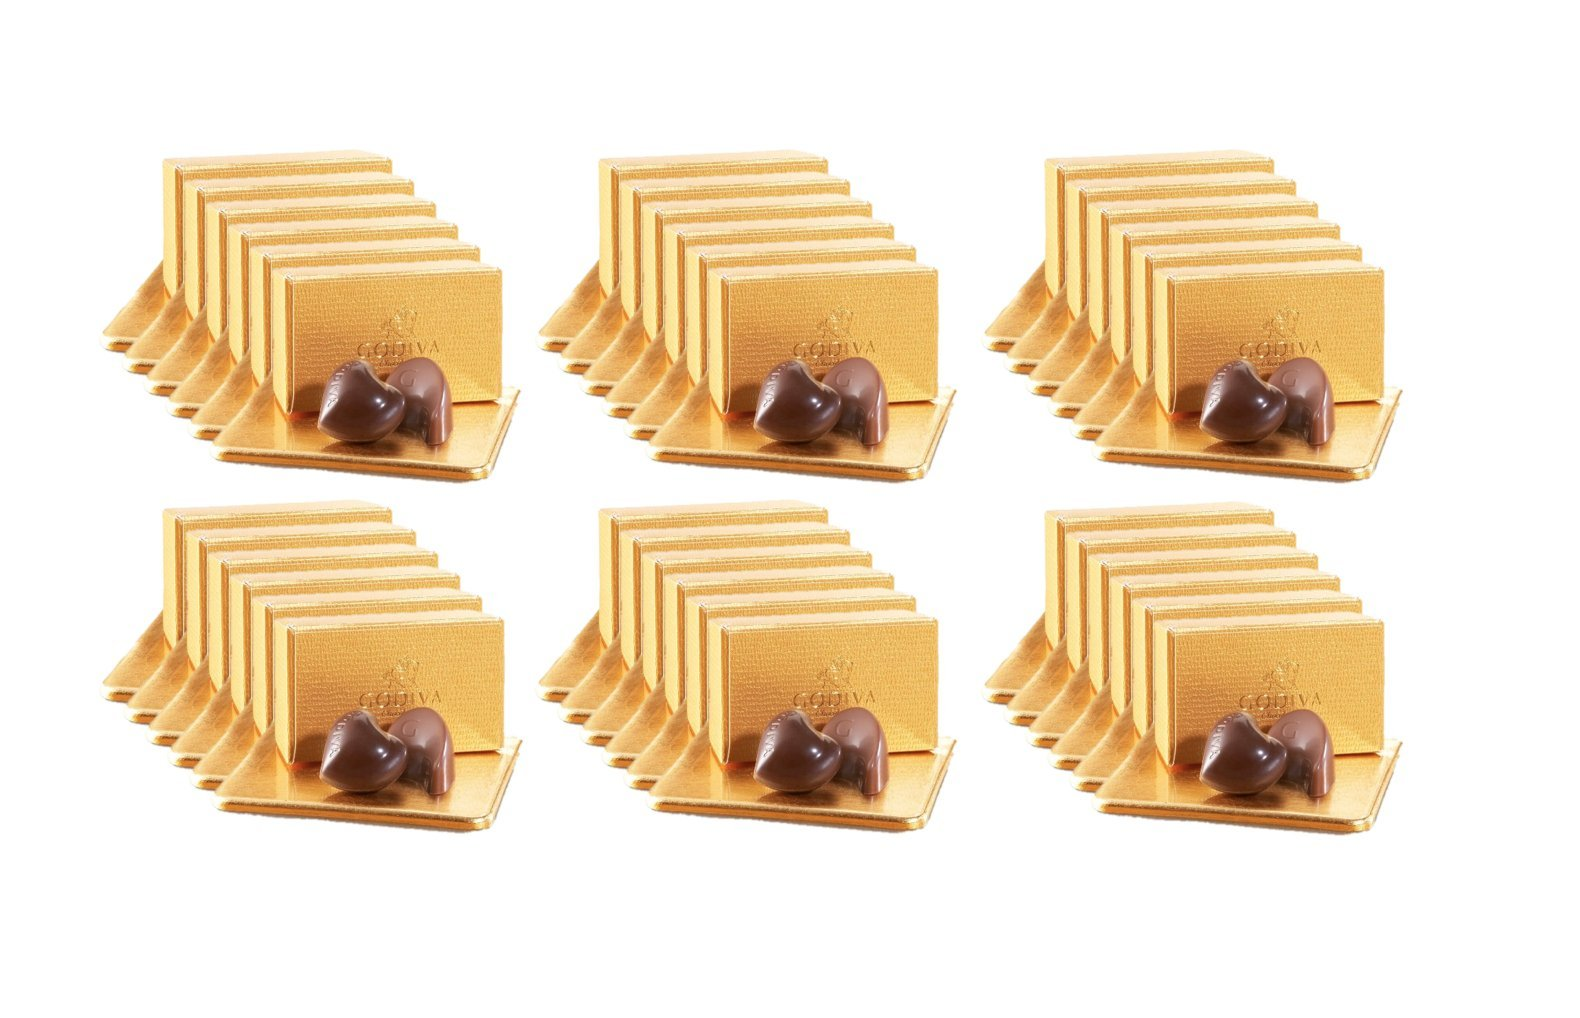 Godiva Chocolatier 36 Individually Packaged, 2-Piece Belgian Chocolate Gold Ballotins, Perfect for Bridal Showers - Parties - Wedding Favors by GODIVA Chocolatier (Image #1)